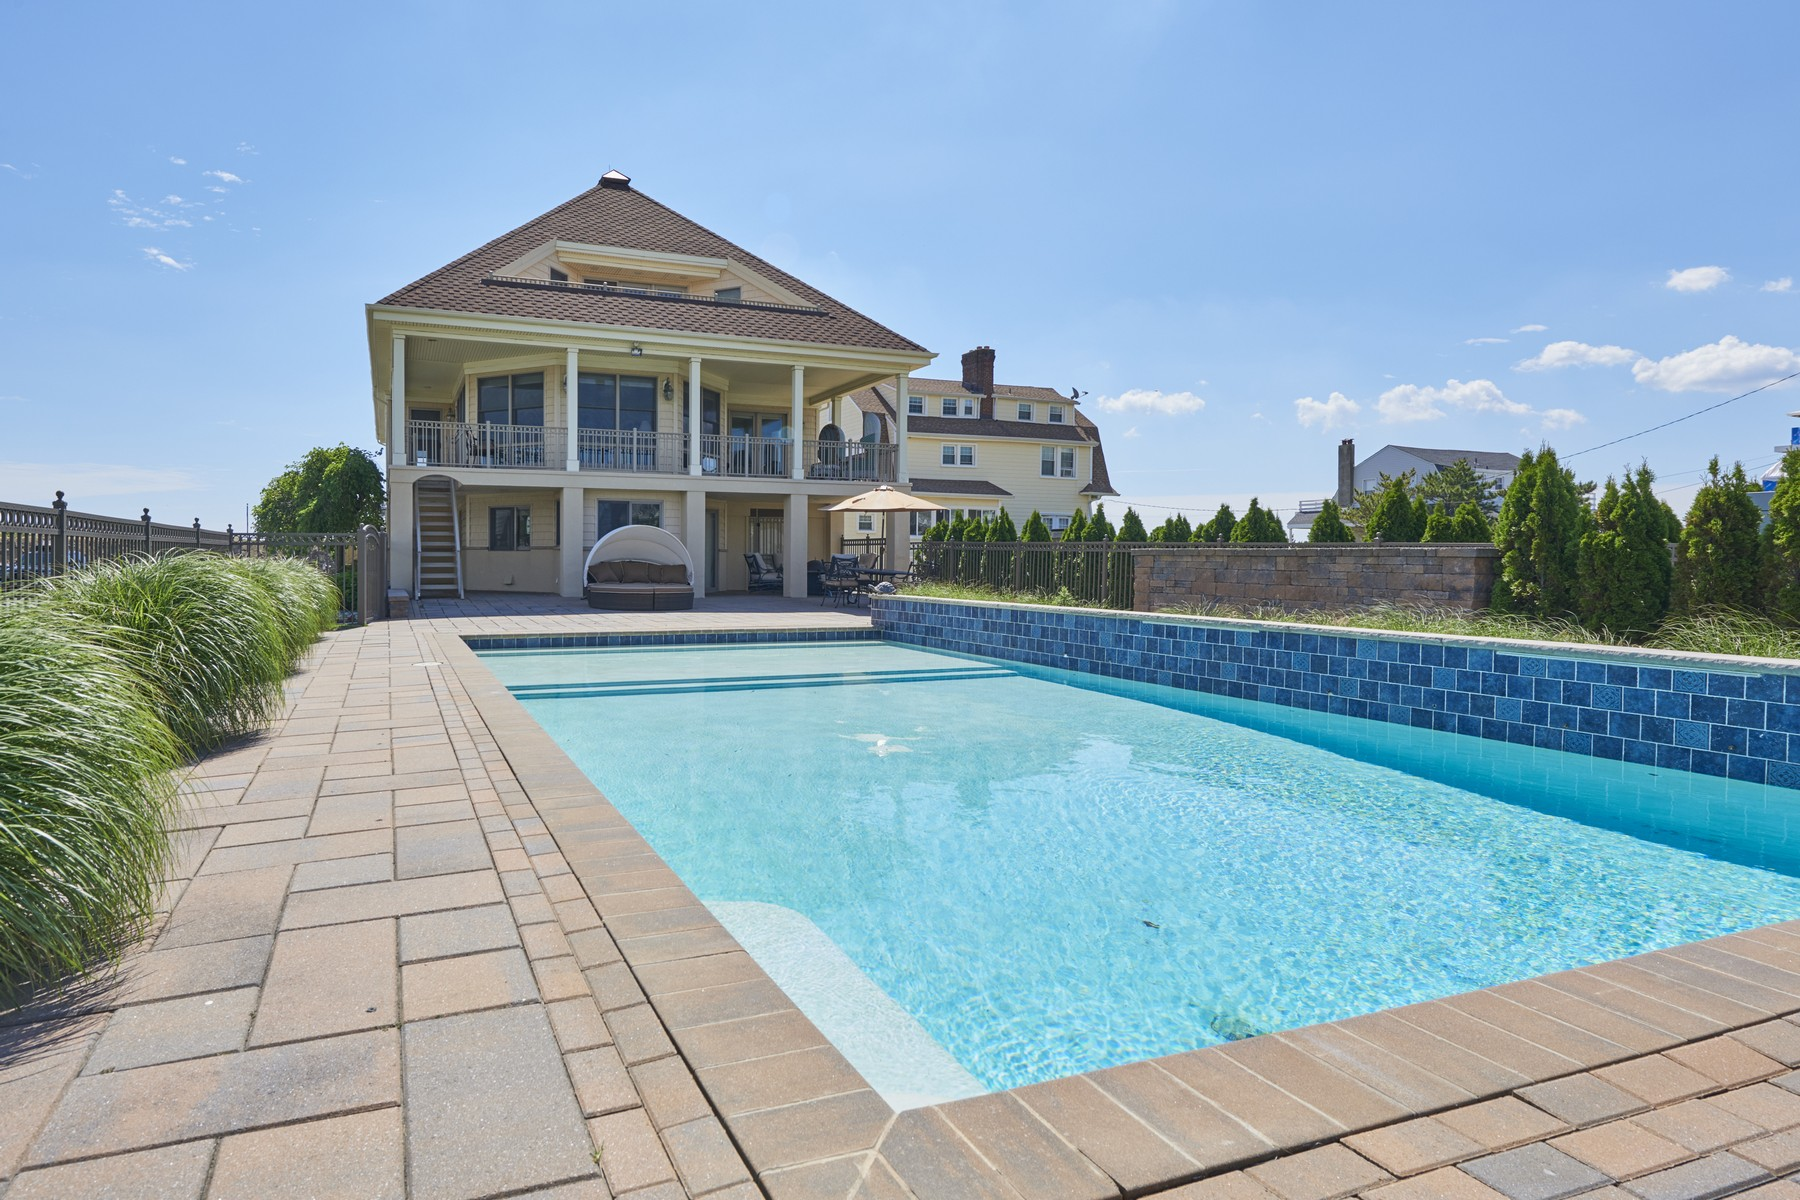 Moradia para Venda às Beautiful Waterfront Property 138 Ocean Ave Monmouth Beach, Nova Jersey, 07750 Estados Unidos